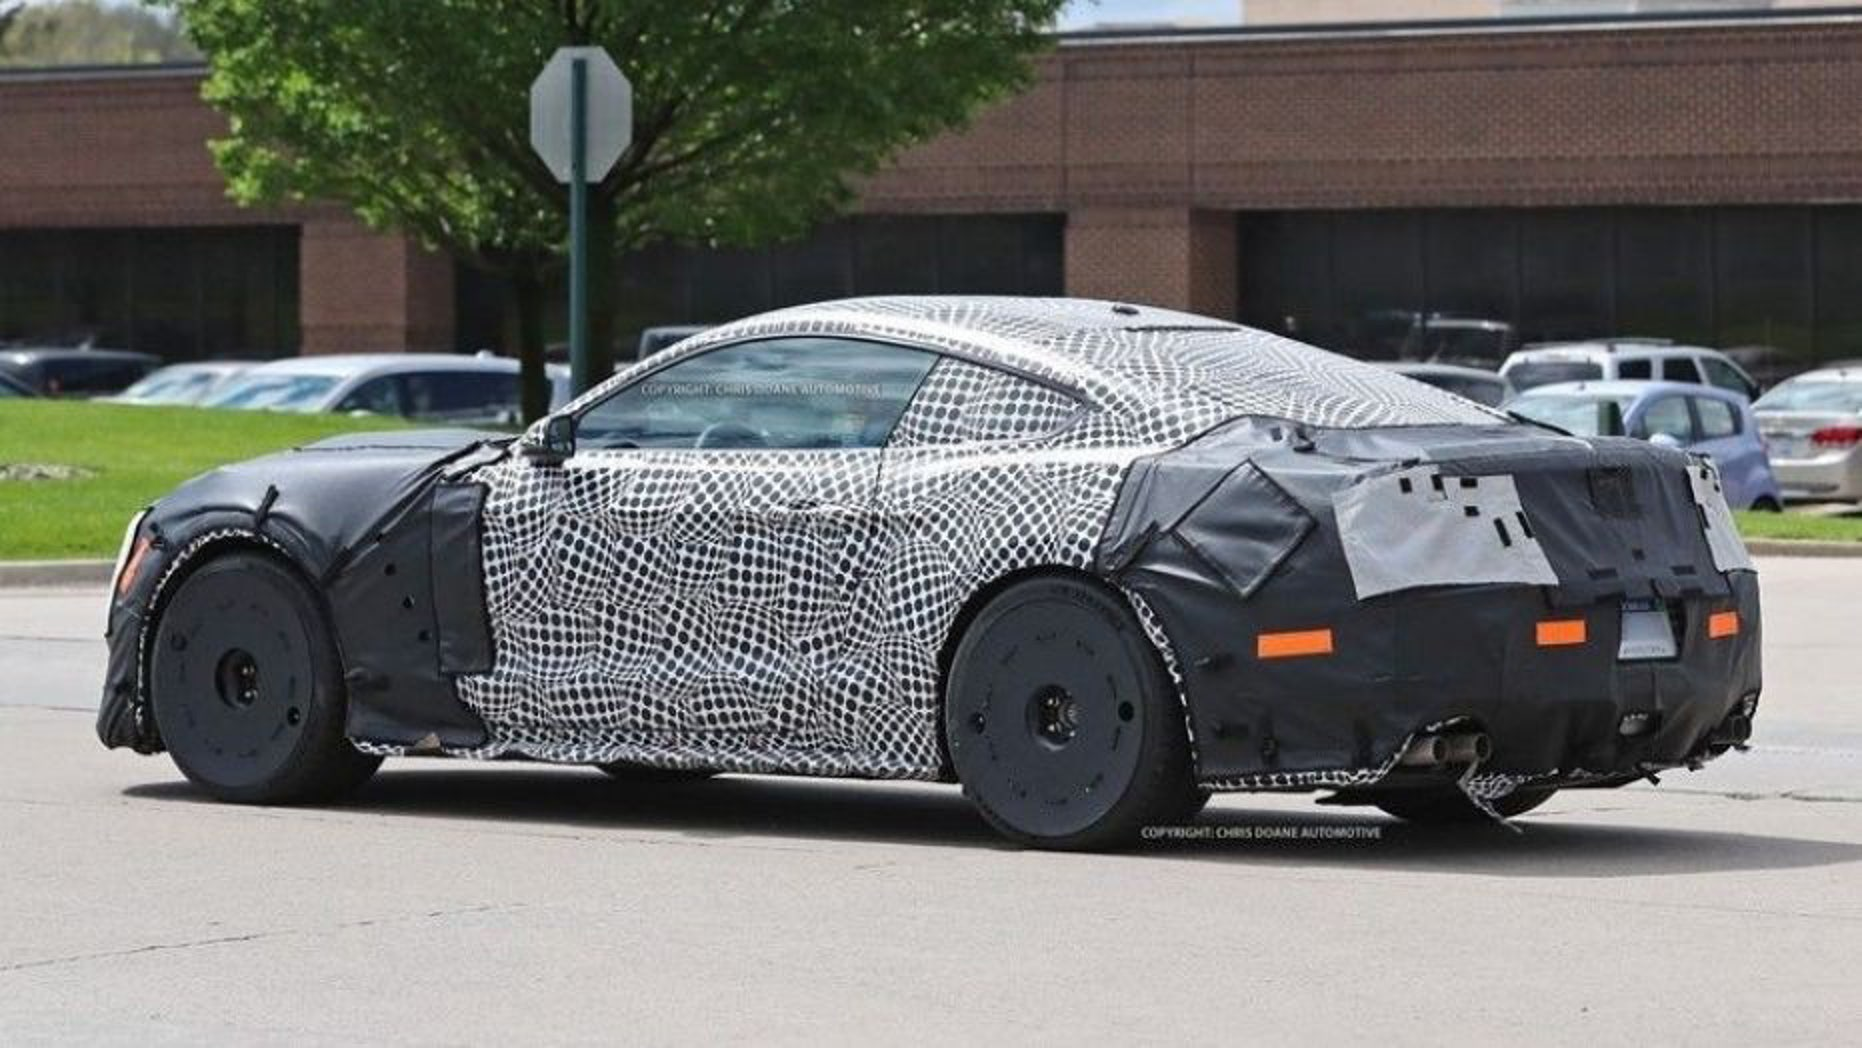 A prototype of what is believed to be the new gt500 has been spotted outside fords